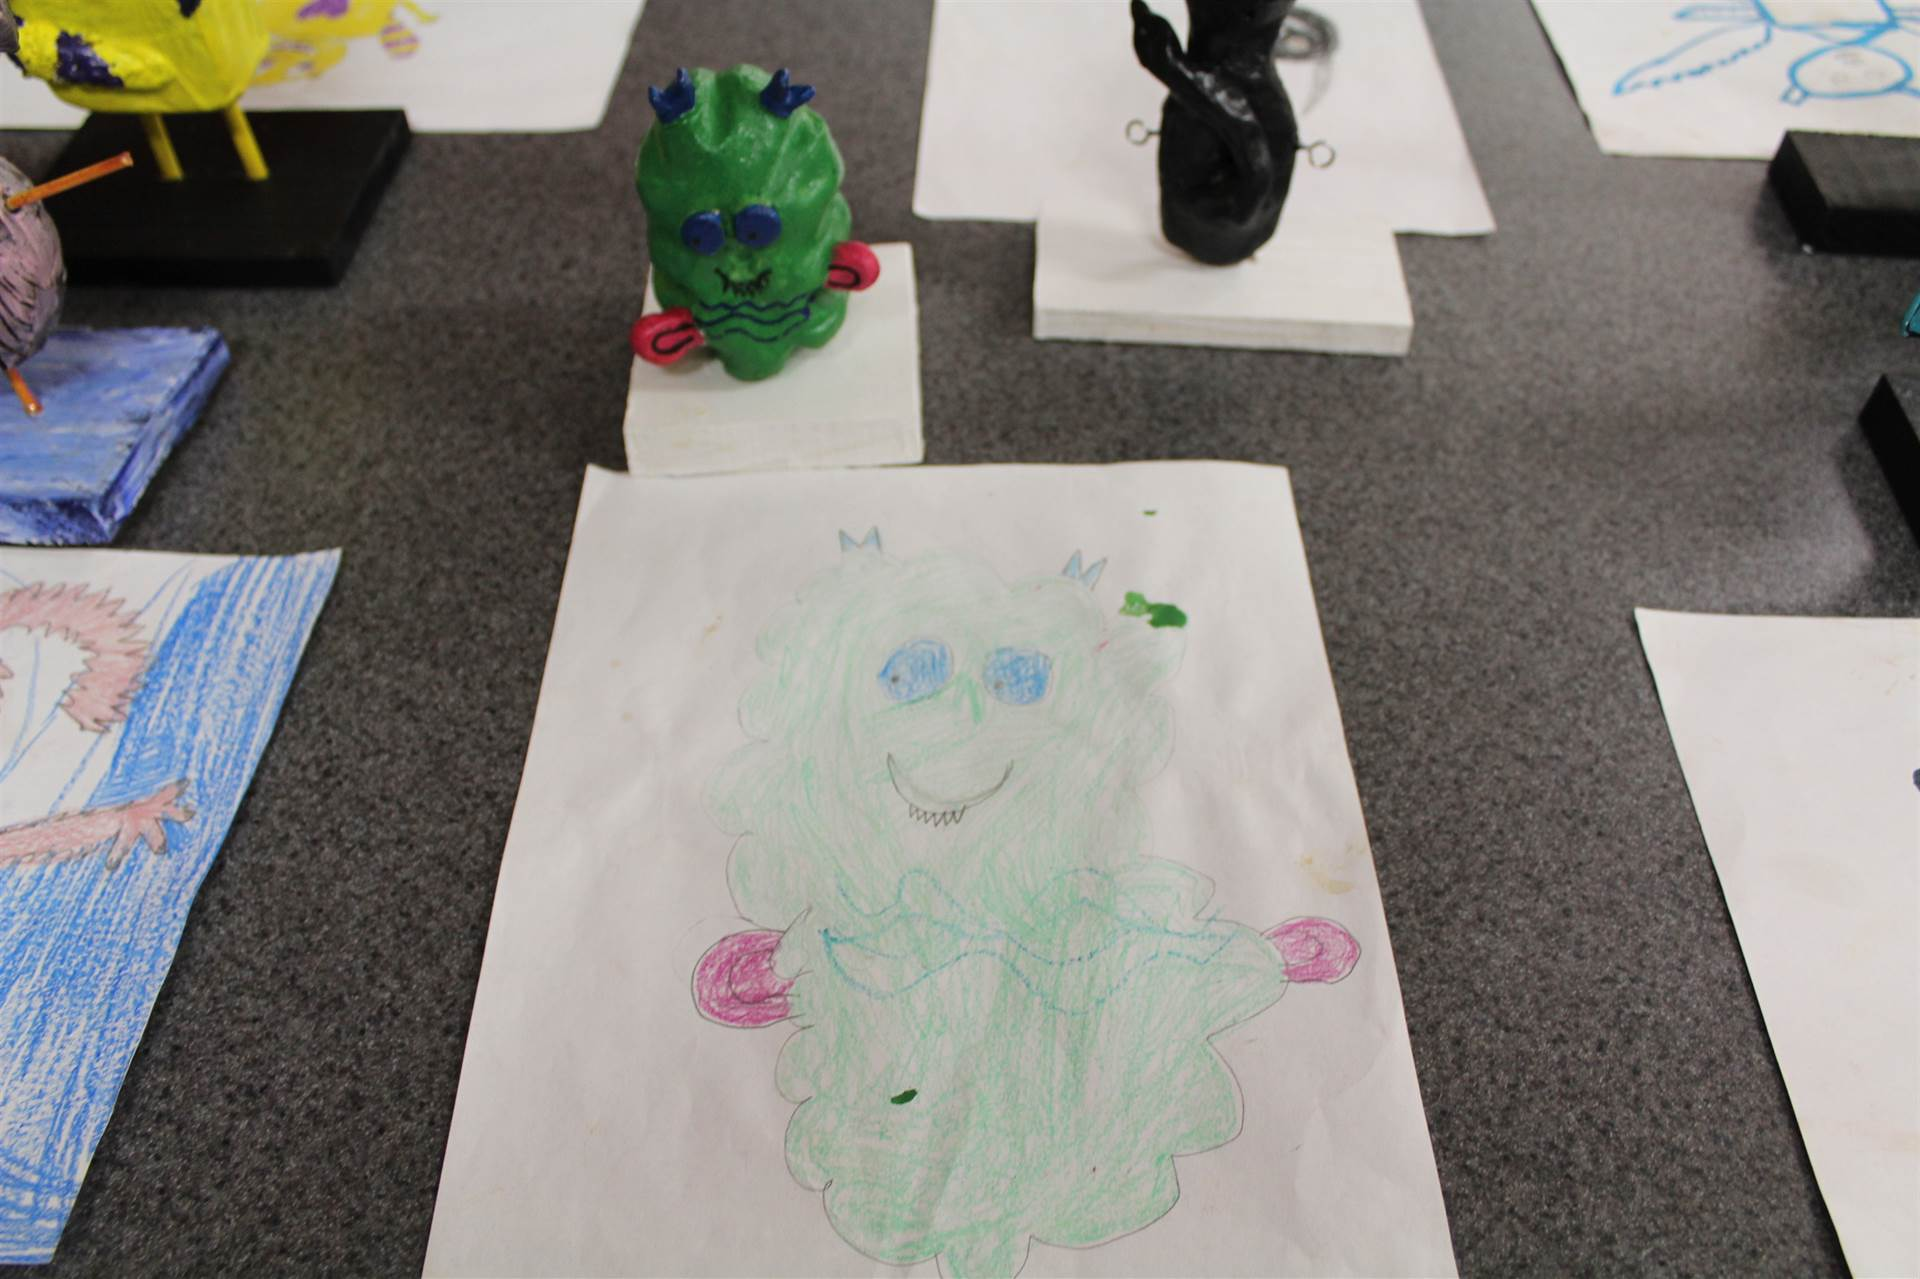 monster 3 d sculpture next to drawn picture 20.